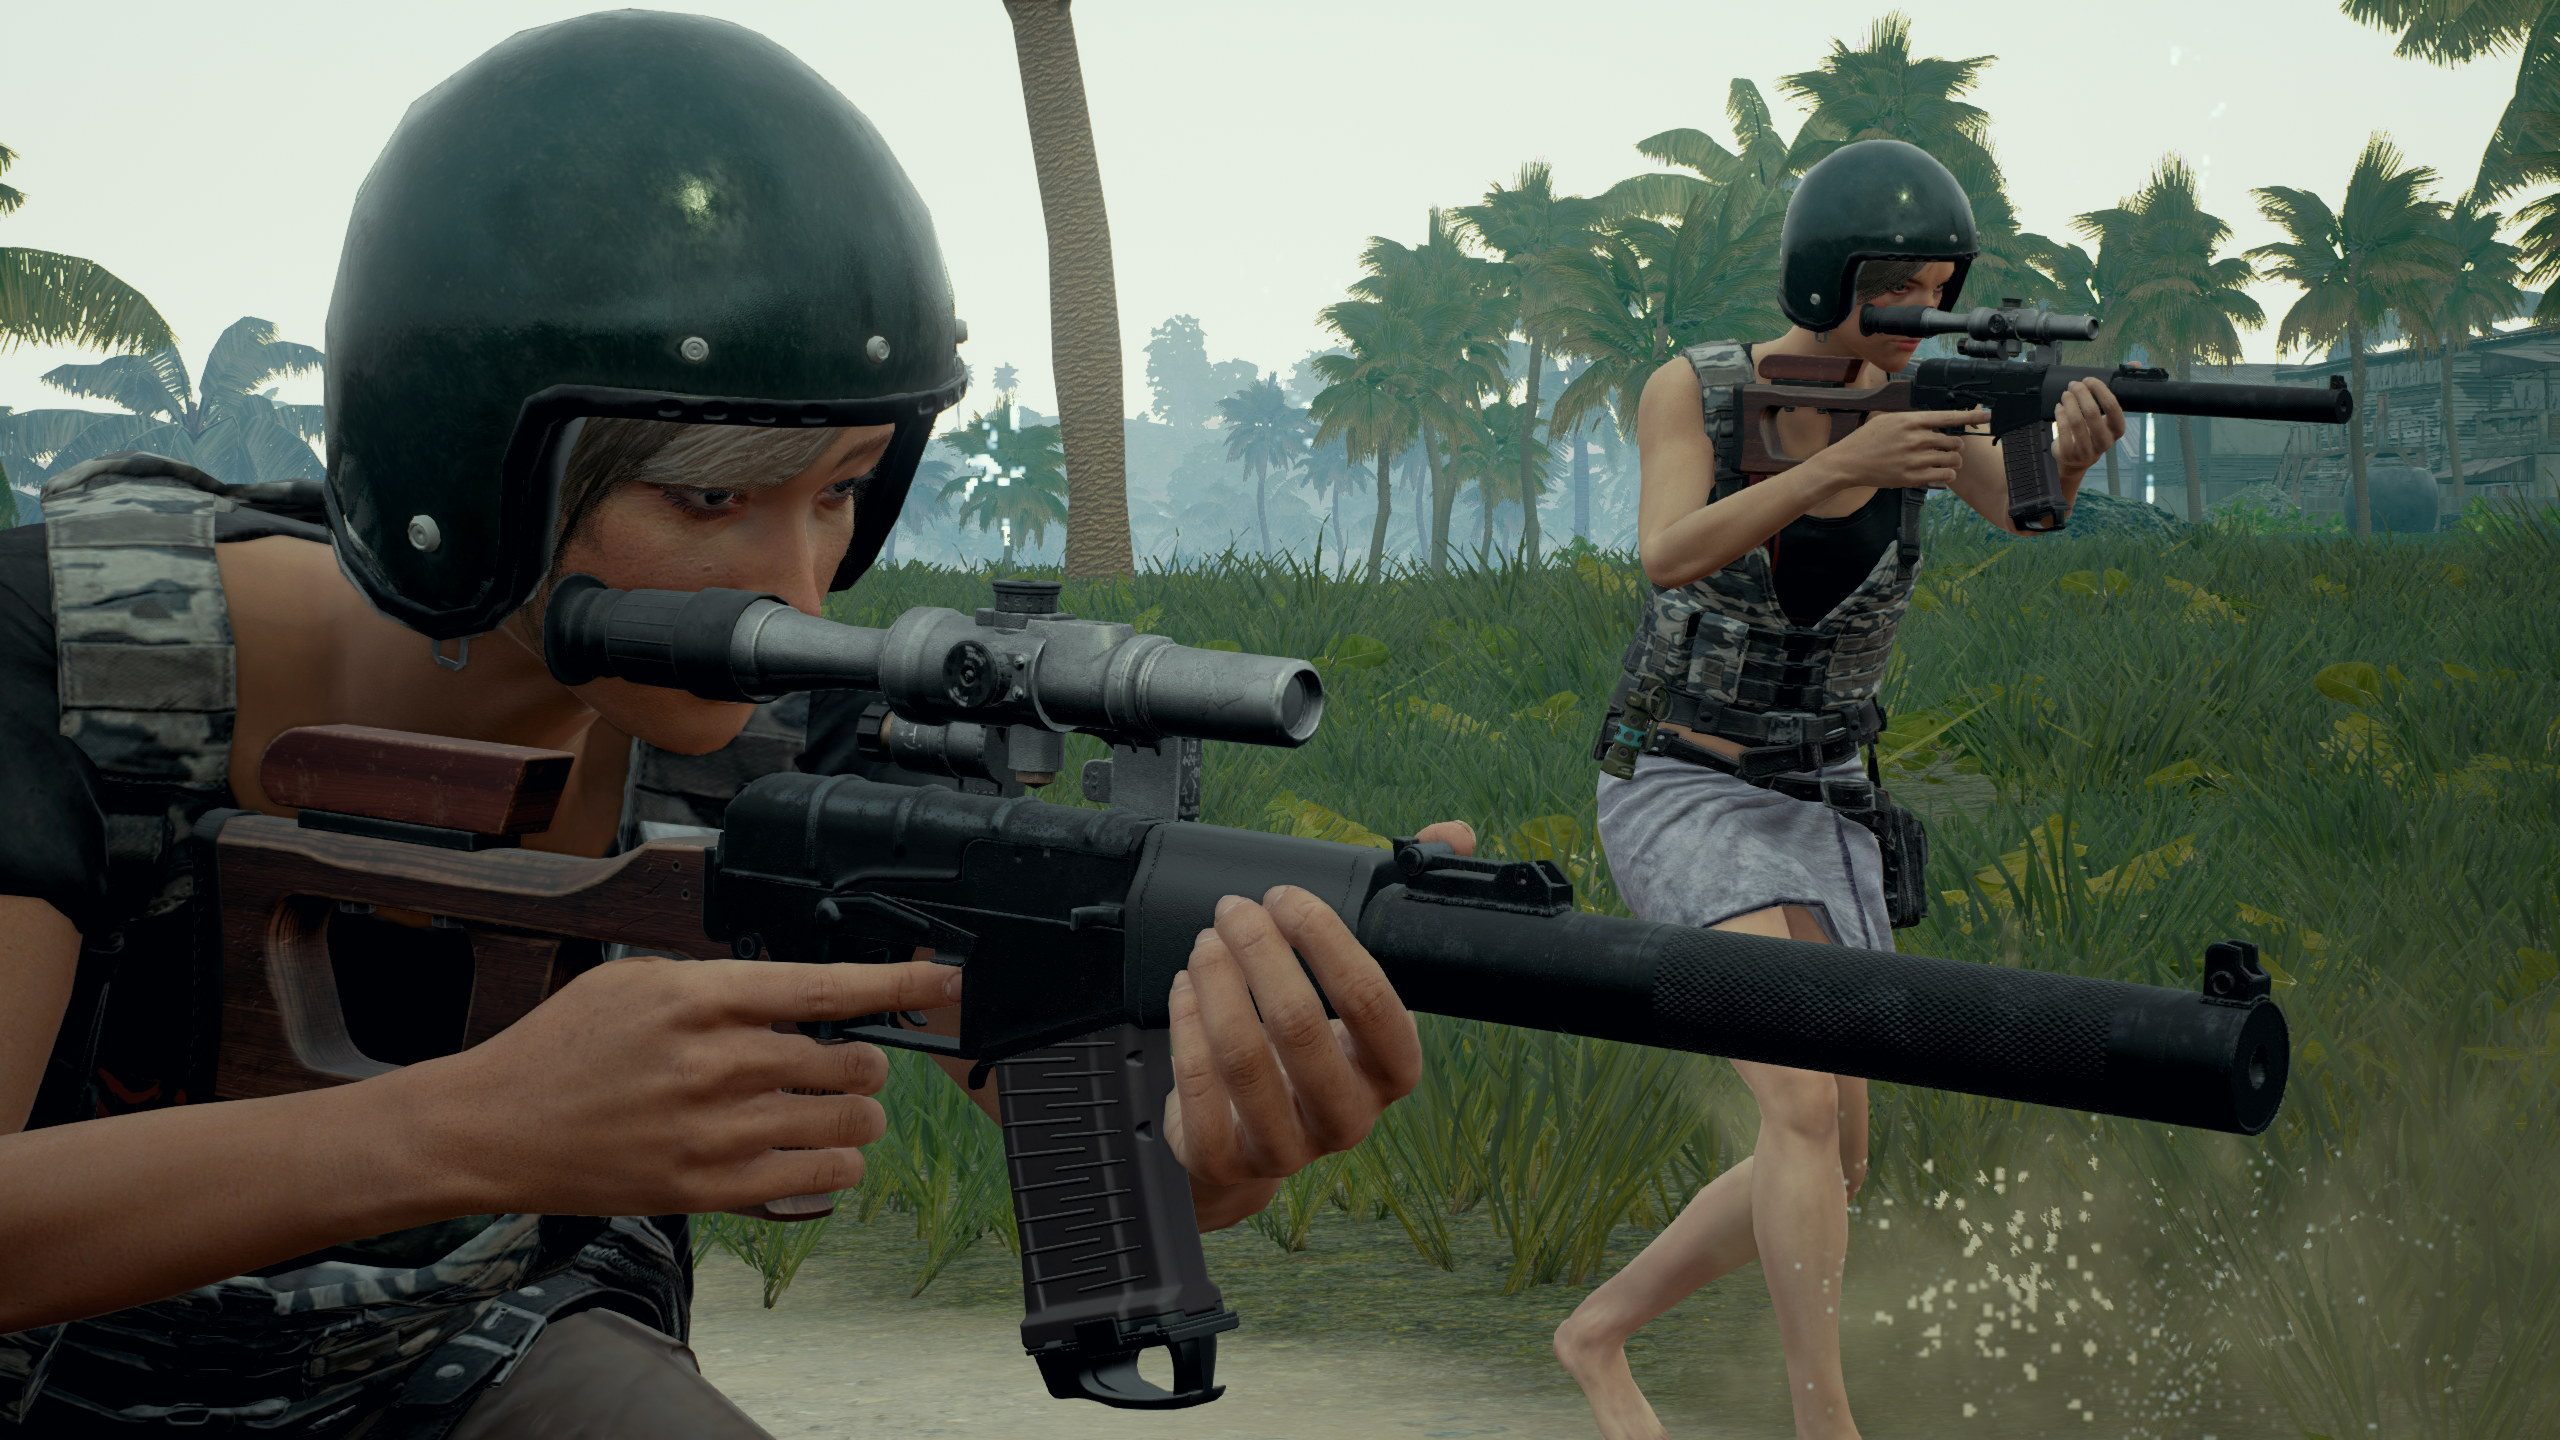 Pubg Announces Flare Gun For Event Mode: Playerunknown's Battlegrounds New Event Mode Is All VSS